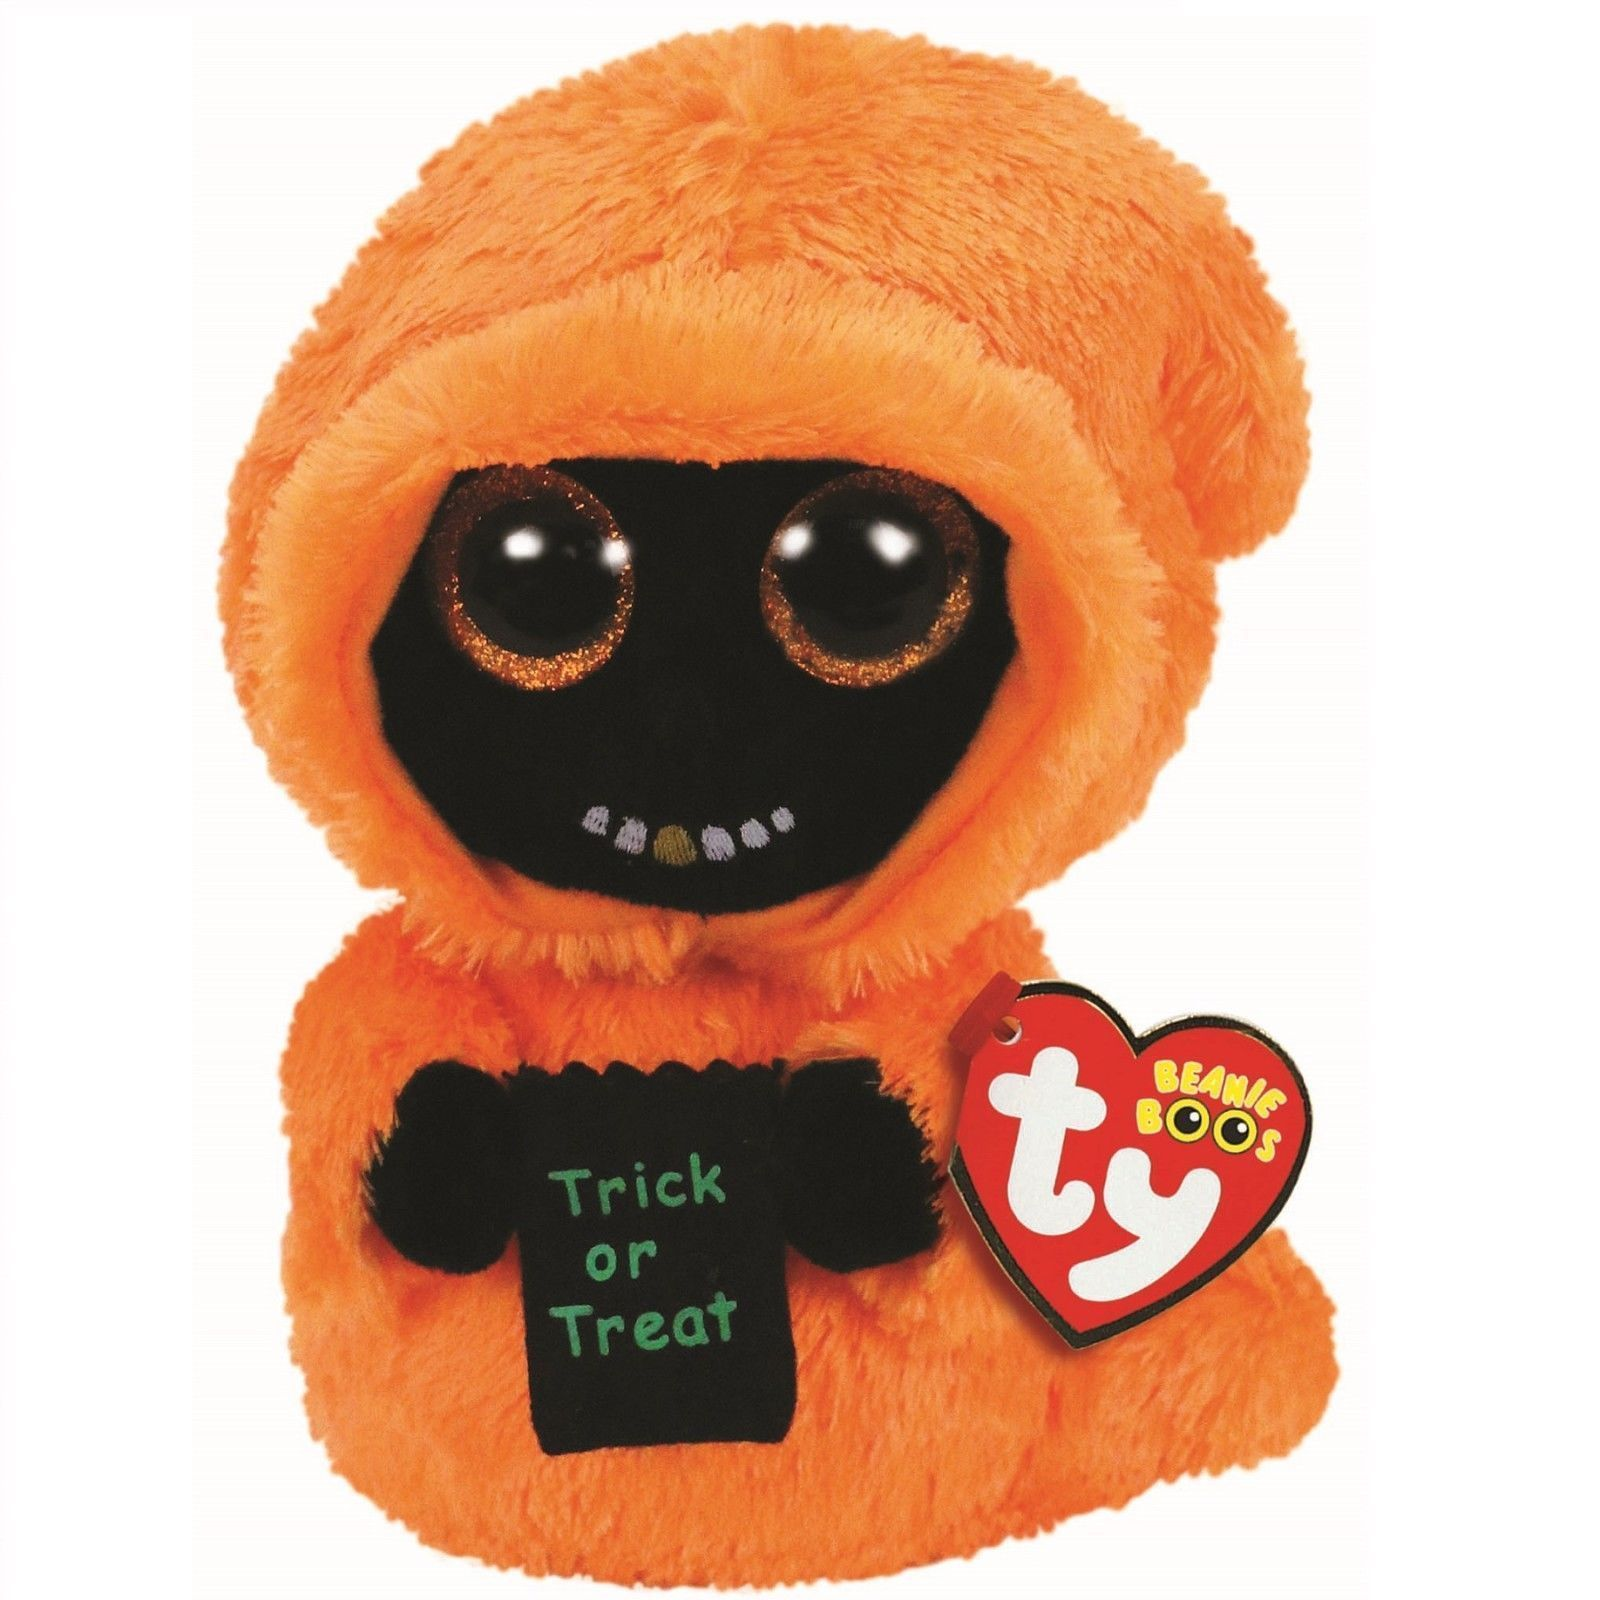 Beanie Babies 2 0 165958  2018 Halloween Ty Beanie Boos 9 Medium Grinner  The Ghoul Plush W Ty Heart Tags -  BUY IT NOW ONLY   11.95 on eBay! 5ddfa159b41